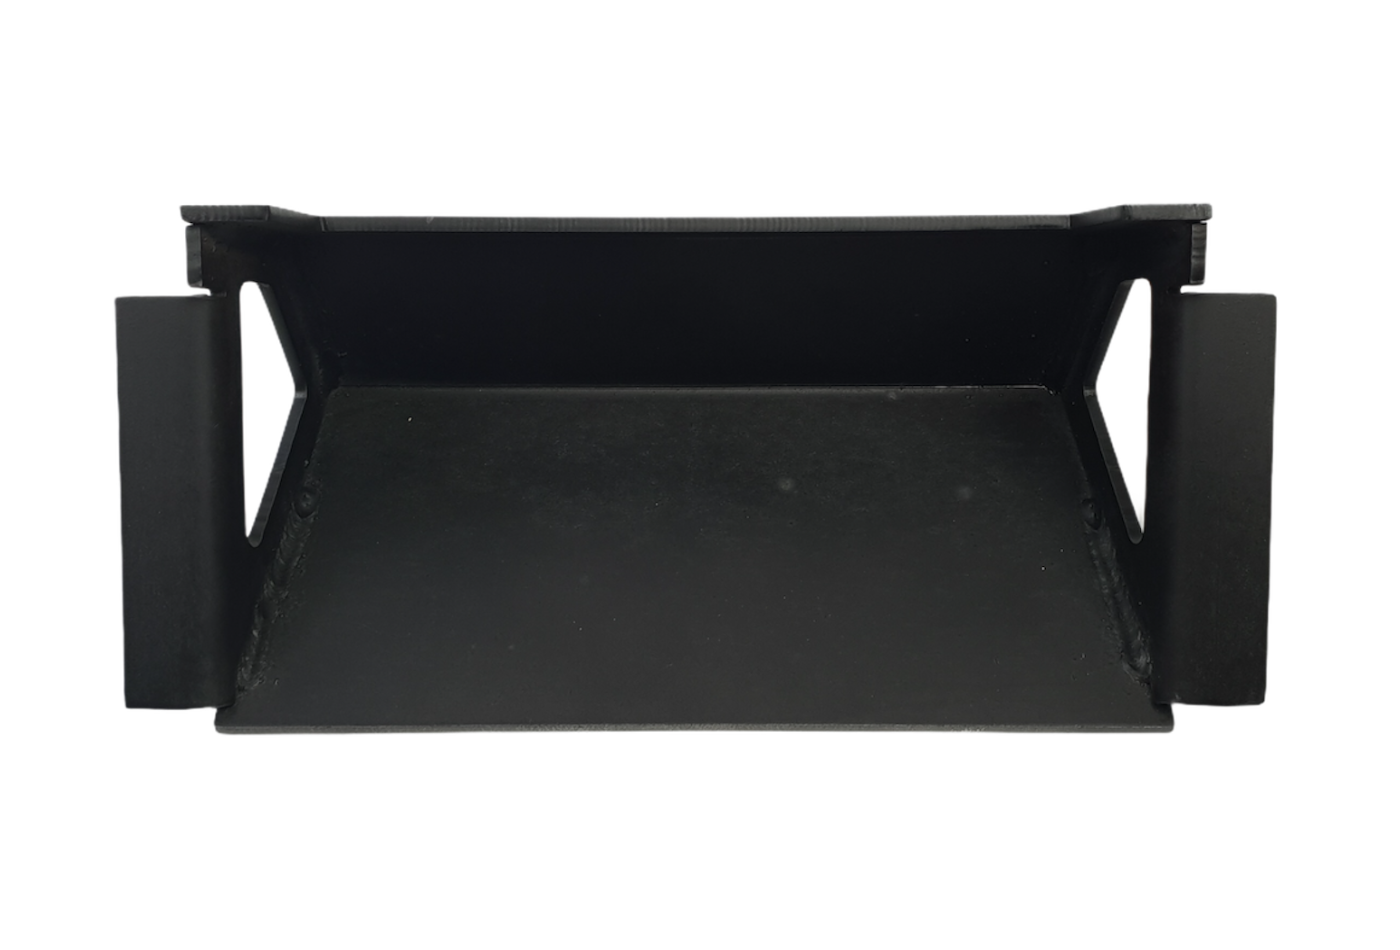 A recouping baffle plate suitable for an Hunter Herald 5 Compact CEII stove.